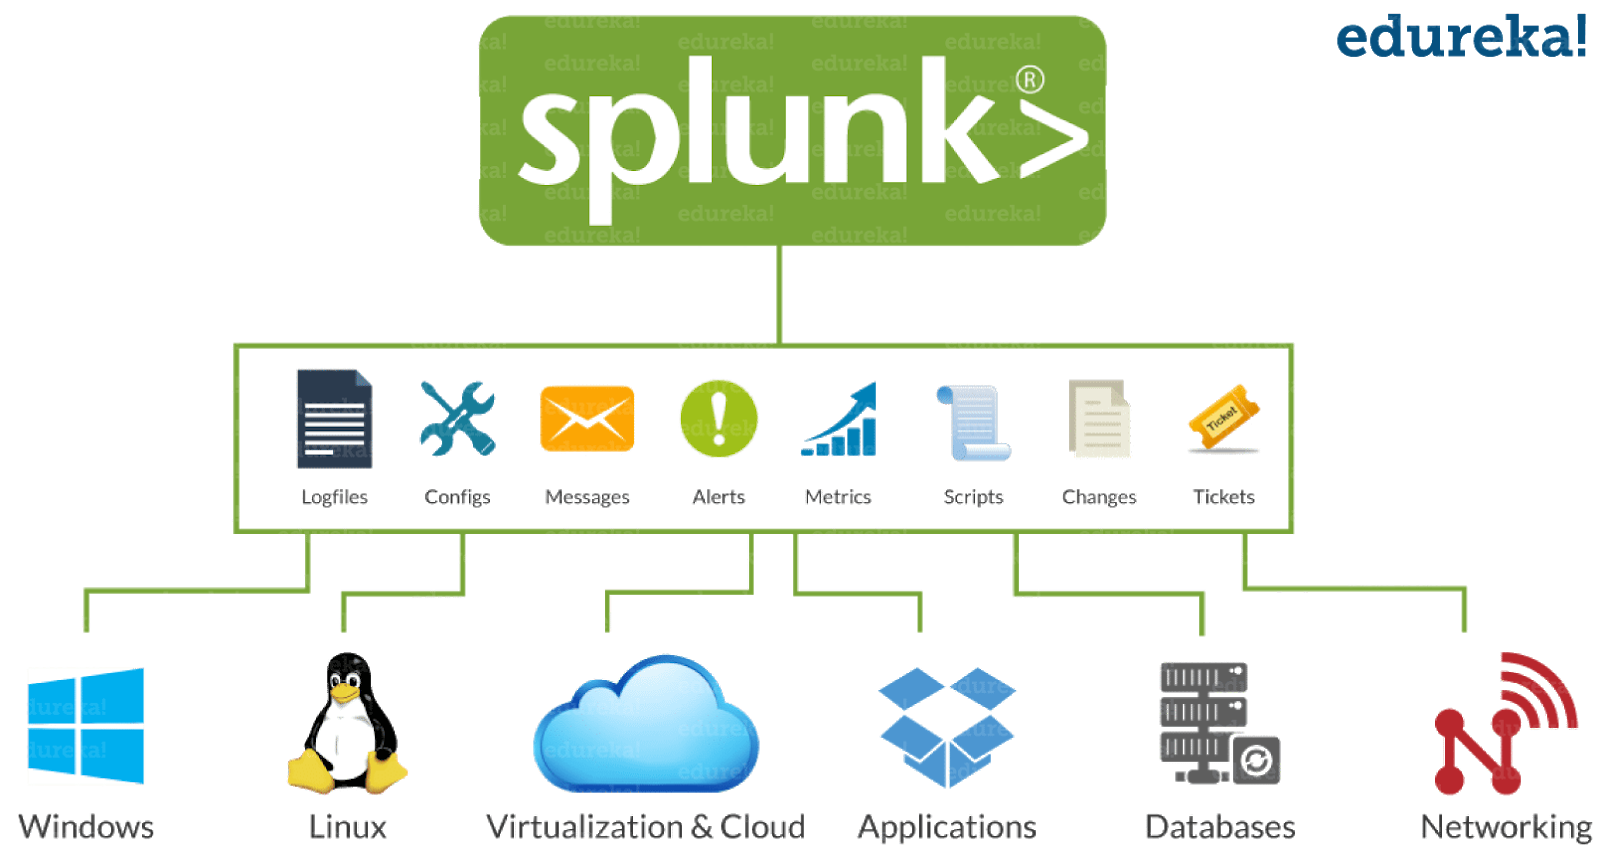 Overview of Splunk data ingestion capabilities and core functionality. Source:  https://www.edureka.co/blog/splunk-tutorial